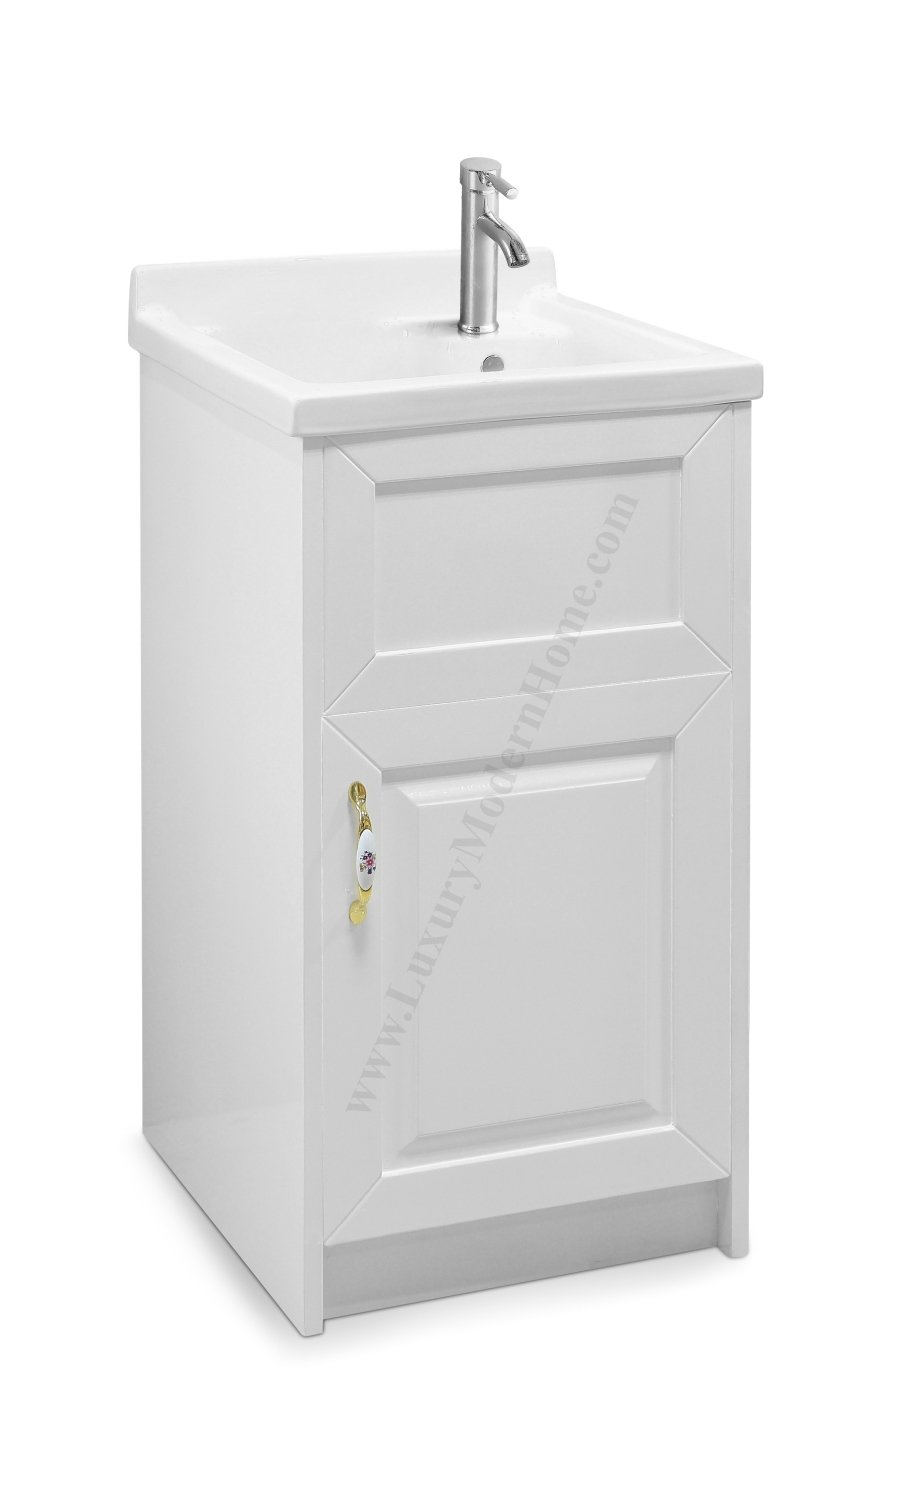 Cheap Deep Laundry Sink Find Deep Laundry Sink Deals On Line At